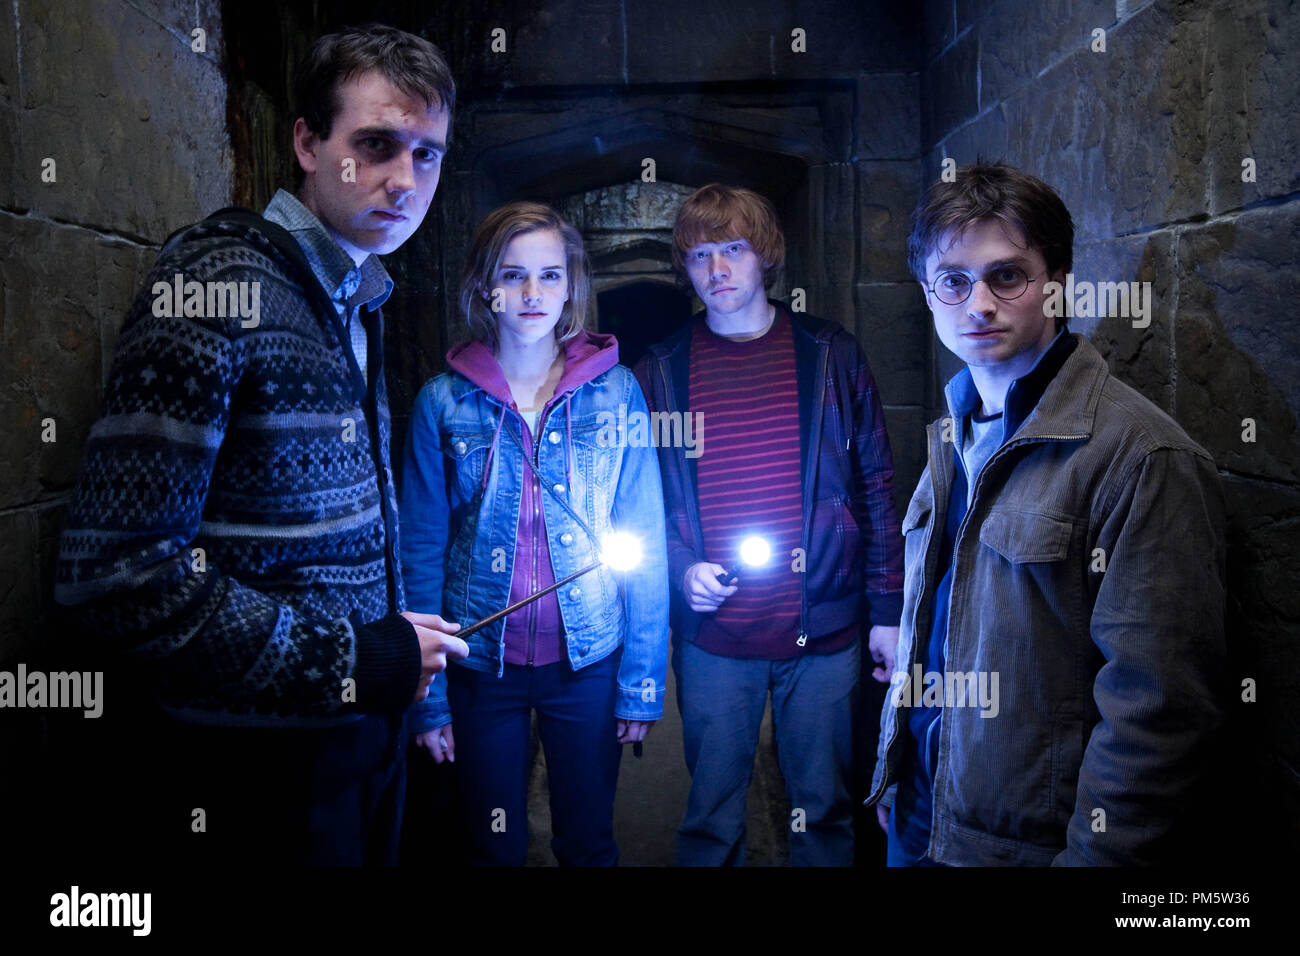 """(L-r) MATTHEW LEWIS as Neville Longbottom, EMMA WATSON as Hermione Granger, RUPERT GRINT as Ron Weasley and DANIEL RADCLIFFE as Harry Potter in Warner Bros. Pictures' fantasy adventure """"HARRY POTTER AND THE DEATHLY HALLOWS – PART 2,"""" a Warner Bros. Pictures release. - Stock Image"""